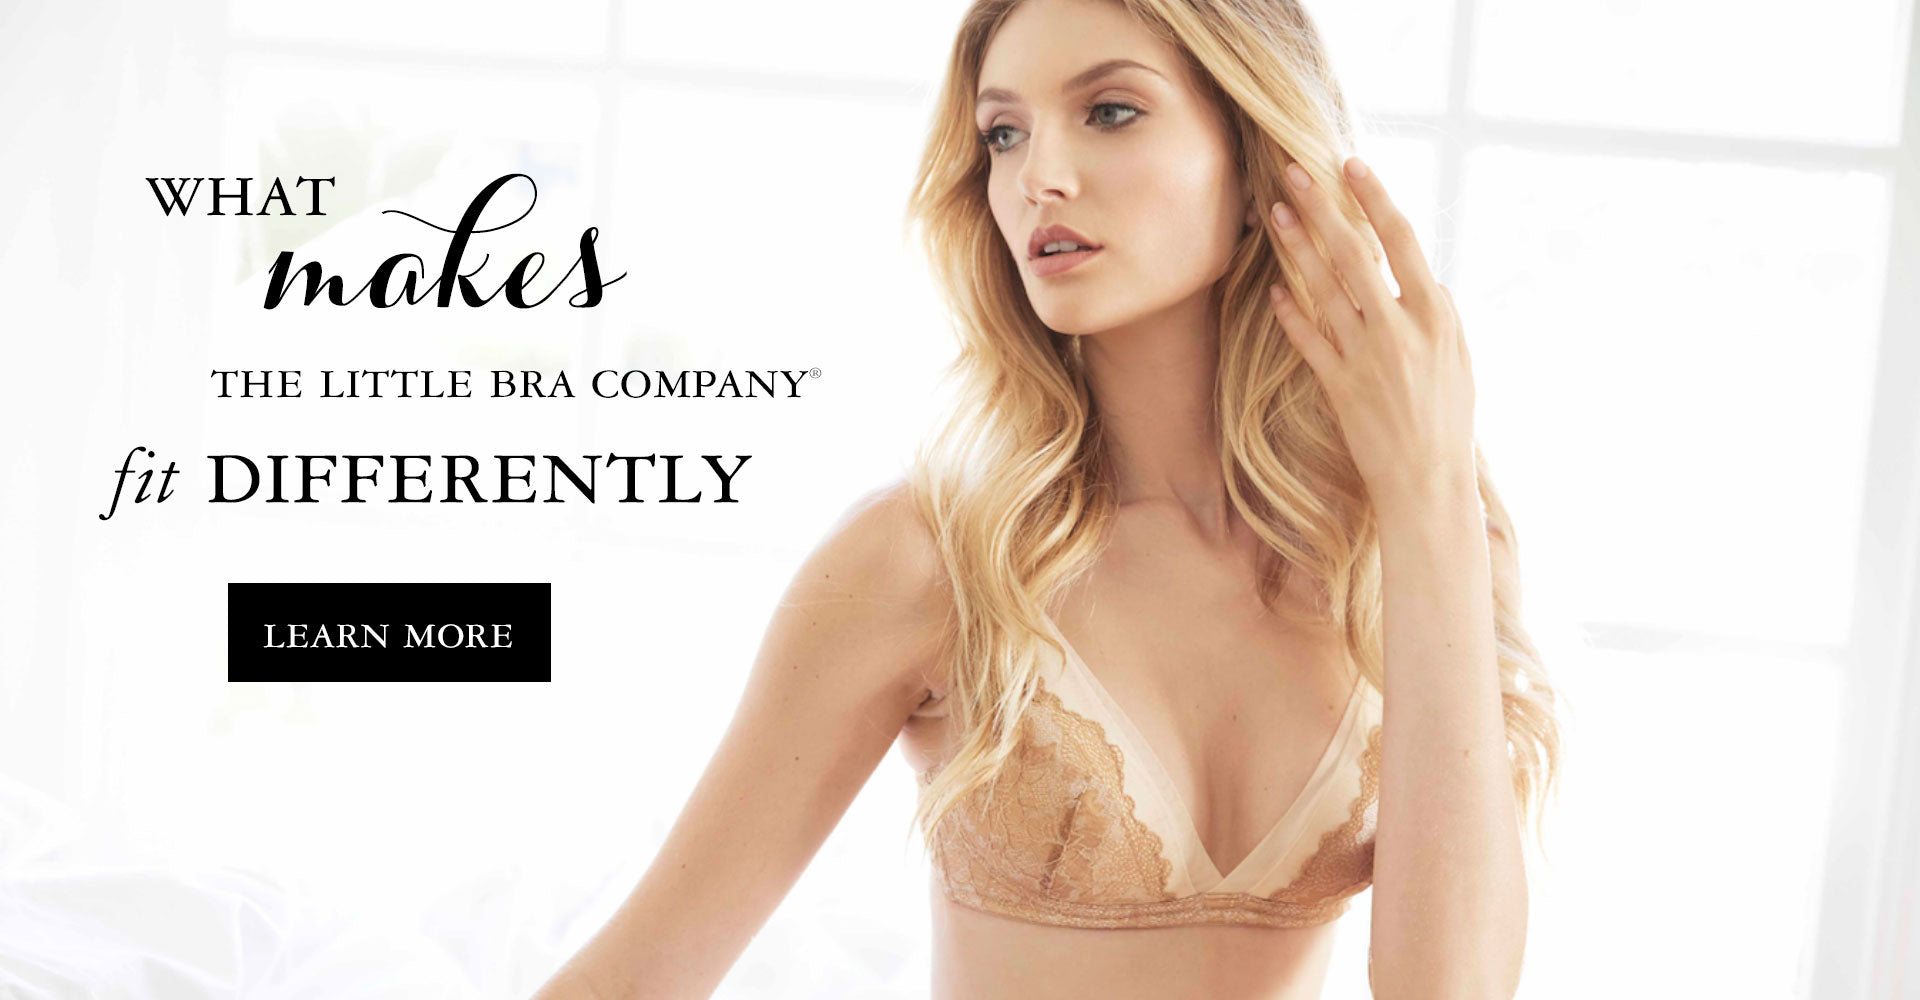 e9bbdcec69 The Little Bra Company - Small Bras and Lingerie in A